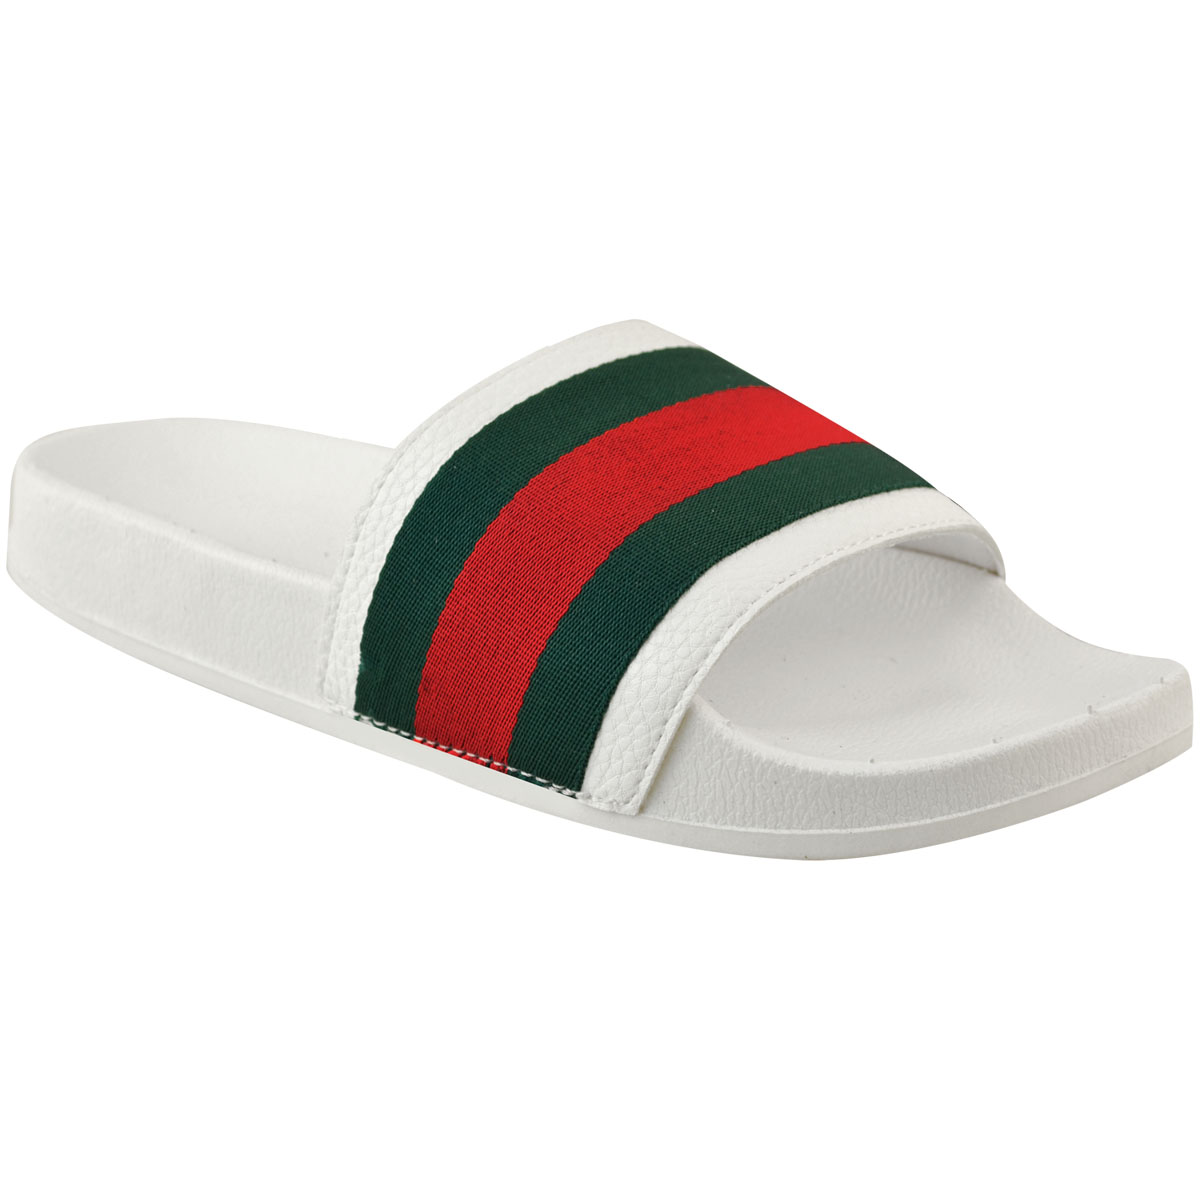 Womens-Ladies-Flat-Striped-Sliders-Summer-Sandals-Slides-Mules-Slippers-Size thumbnail 9